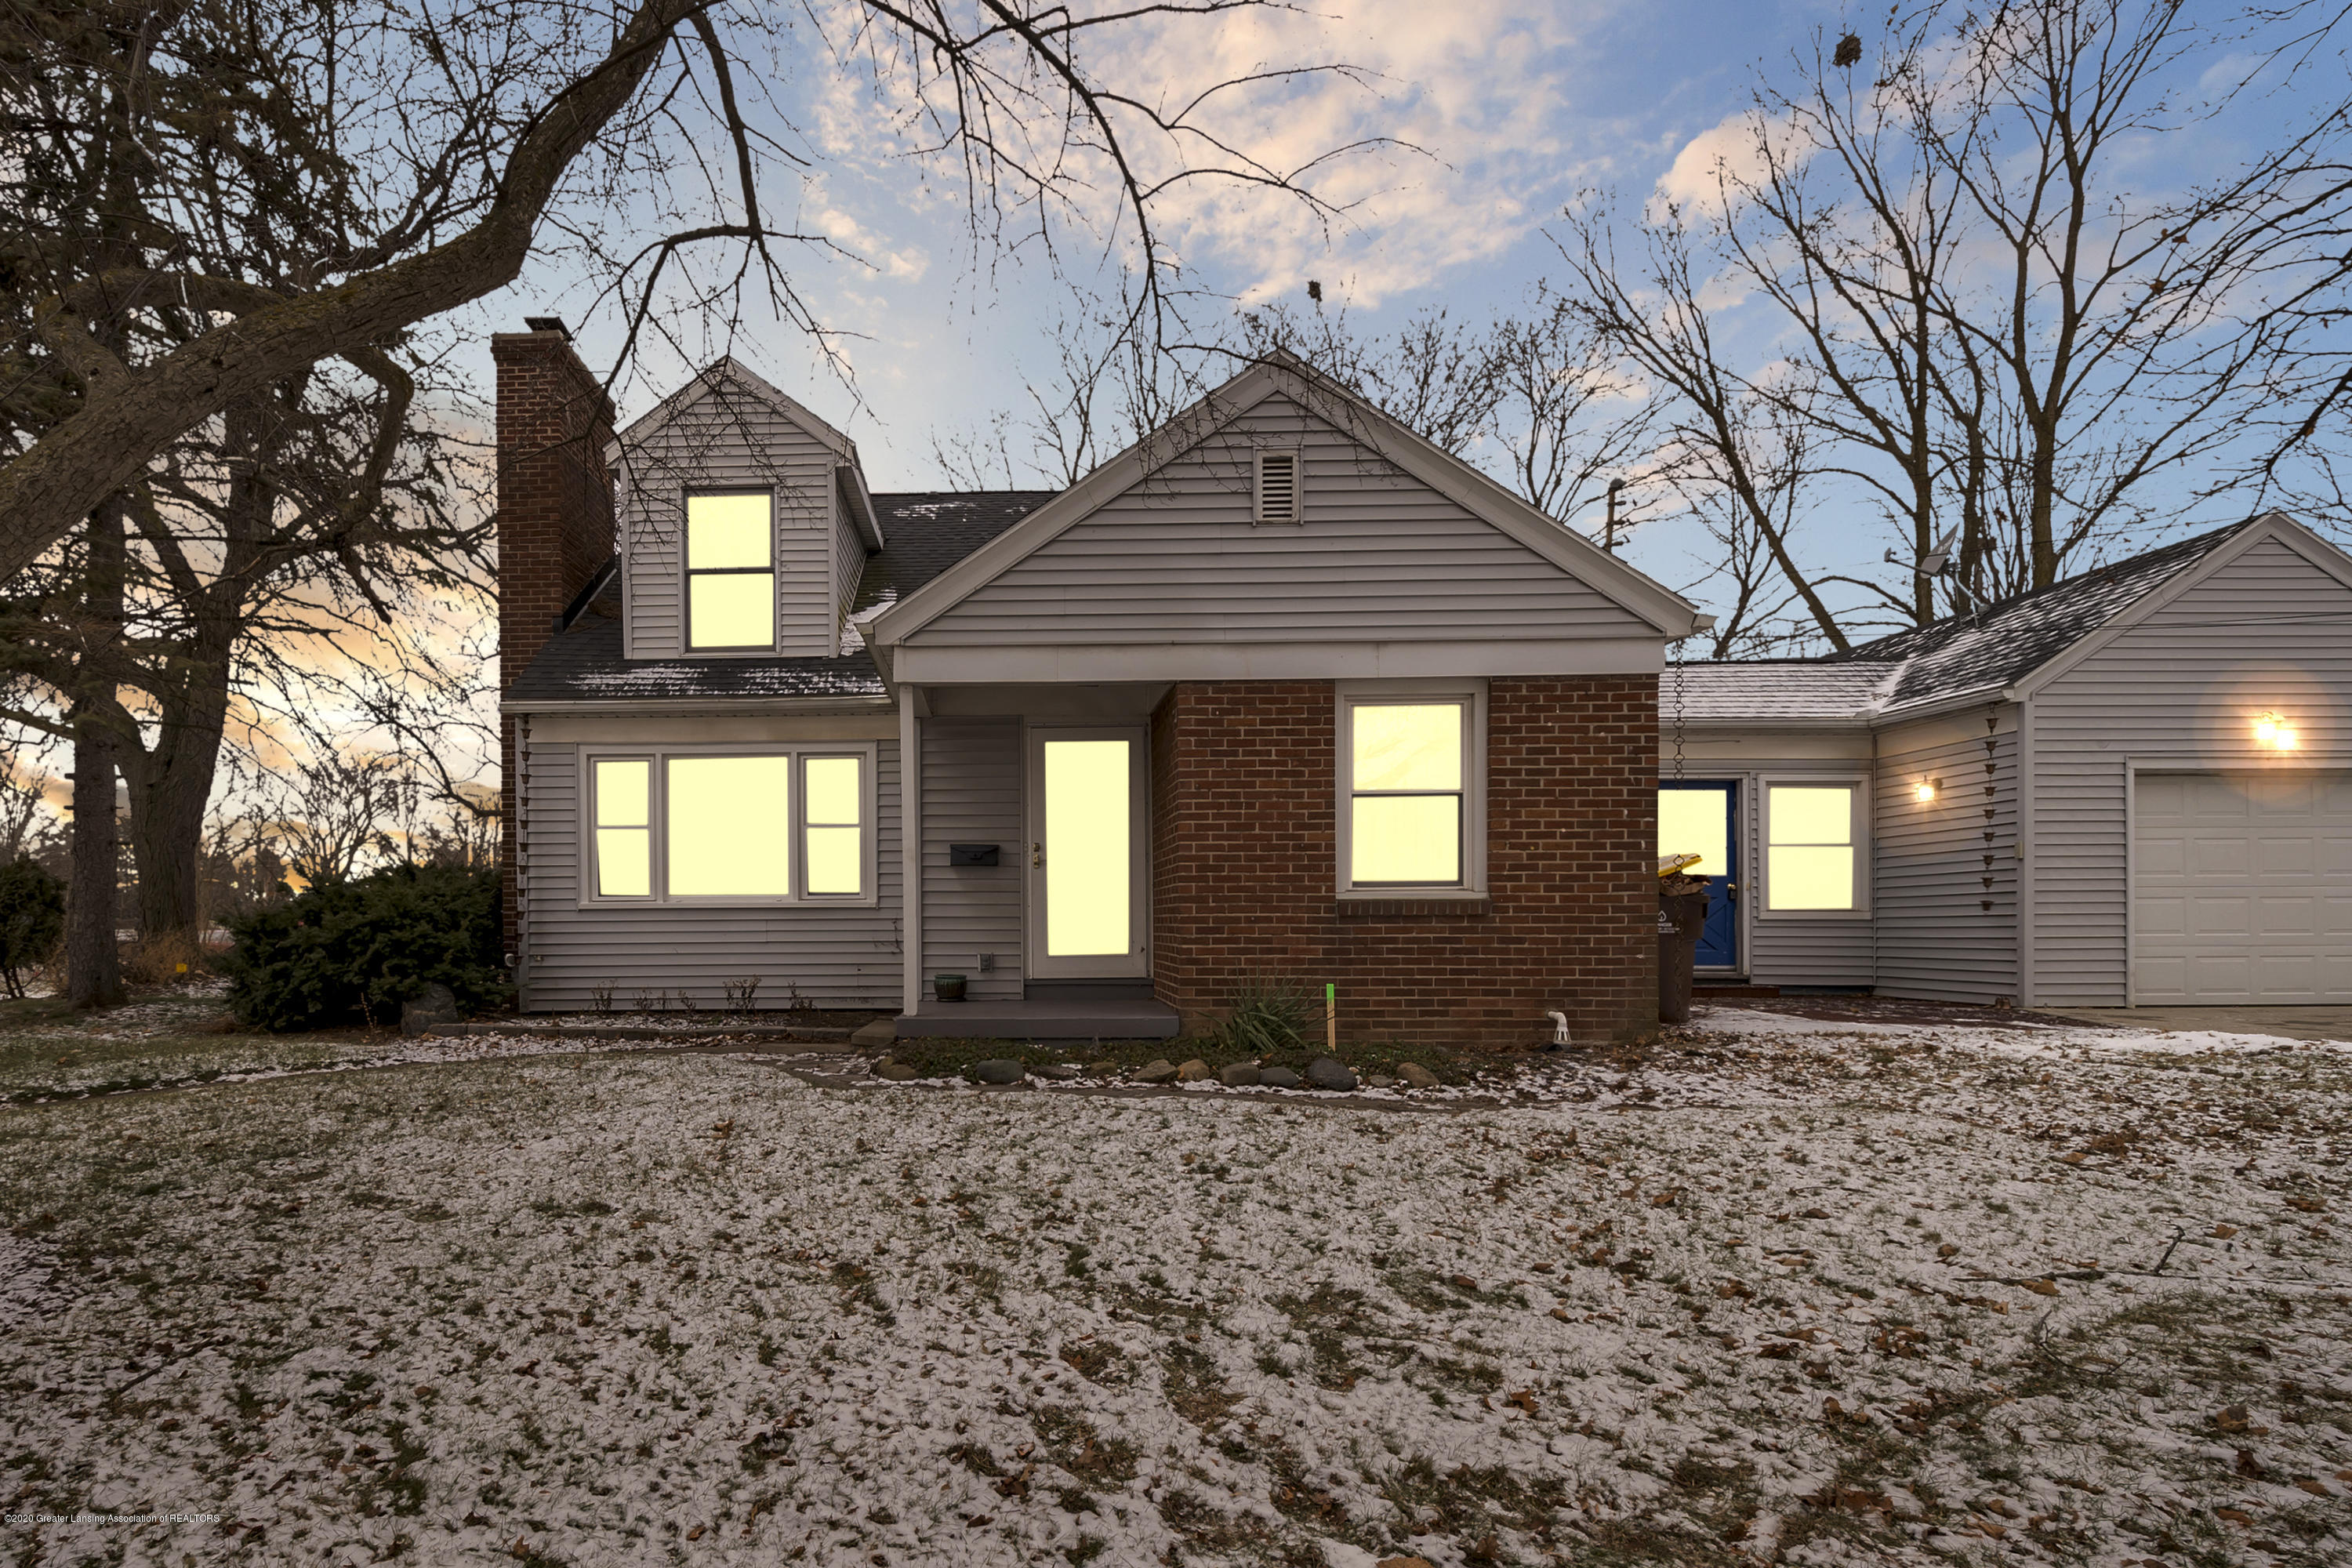 3510 W Saginaw St - 3510-W-Saginaw-Lansing-WindowStill-Real- - 1